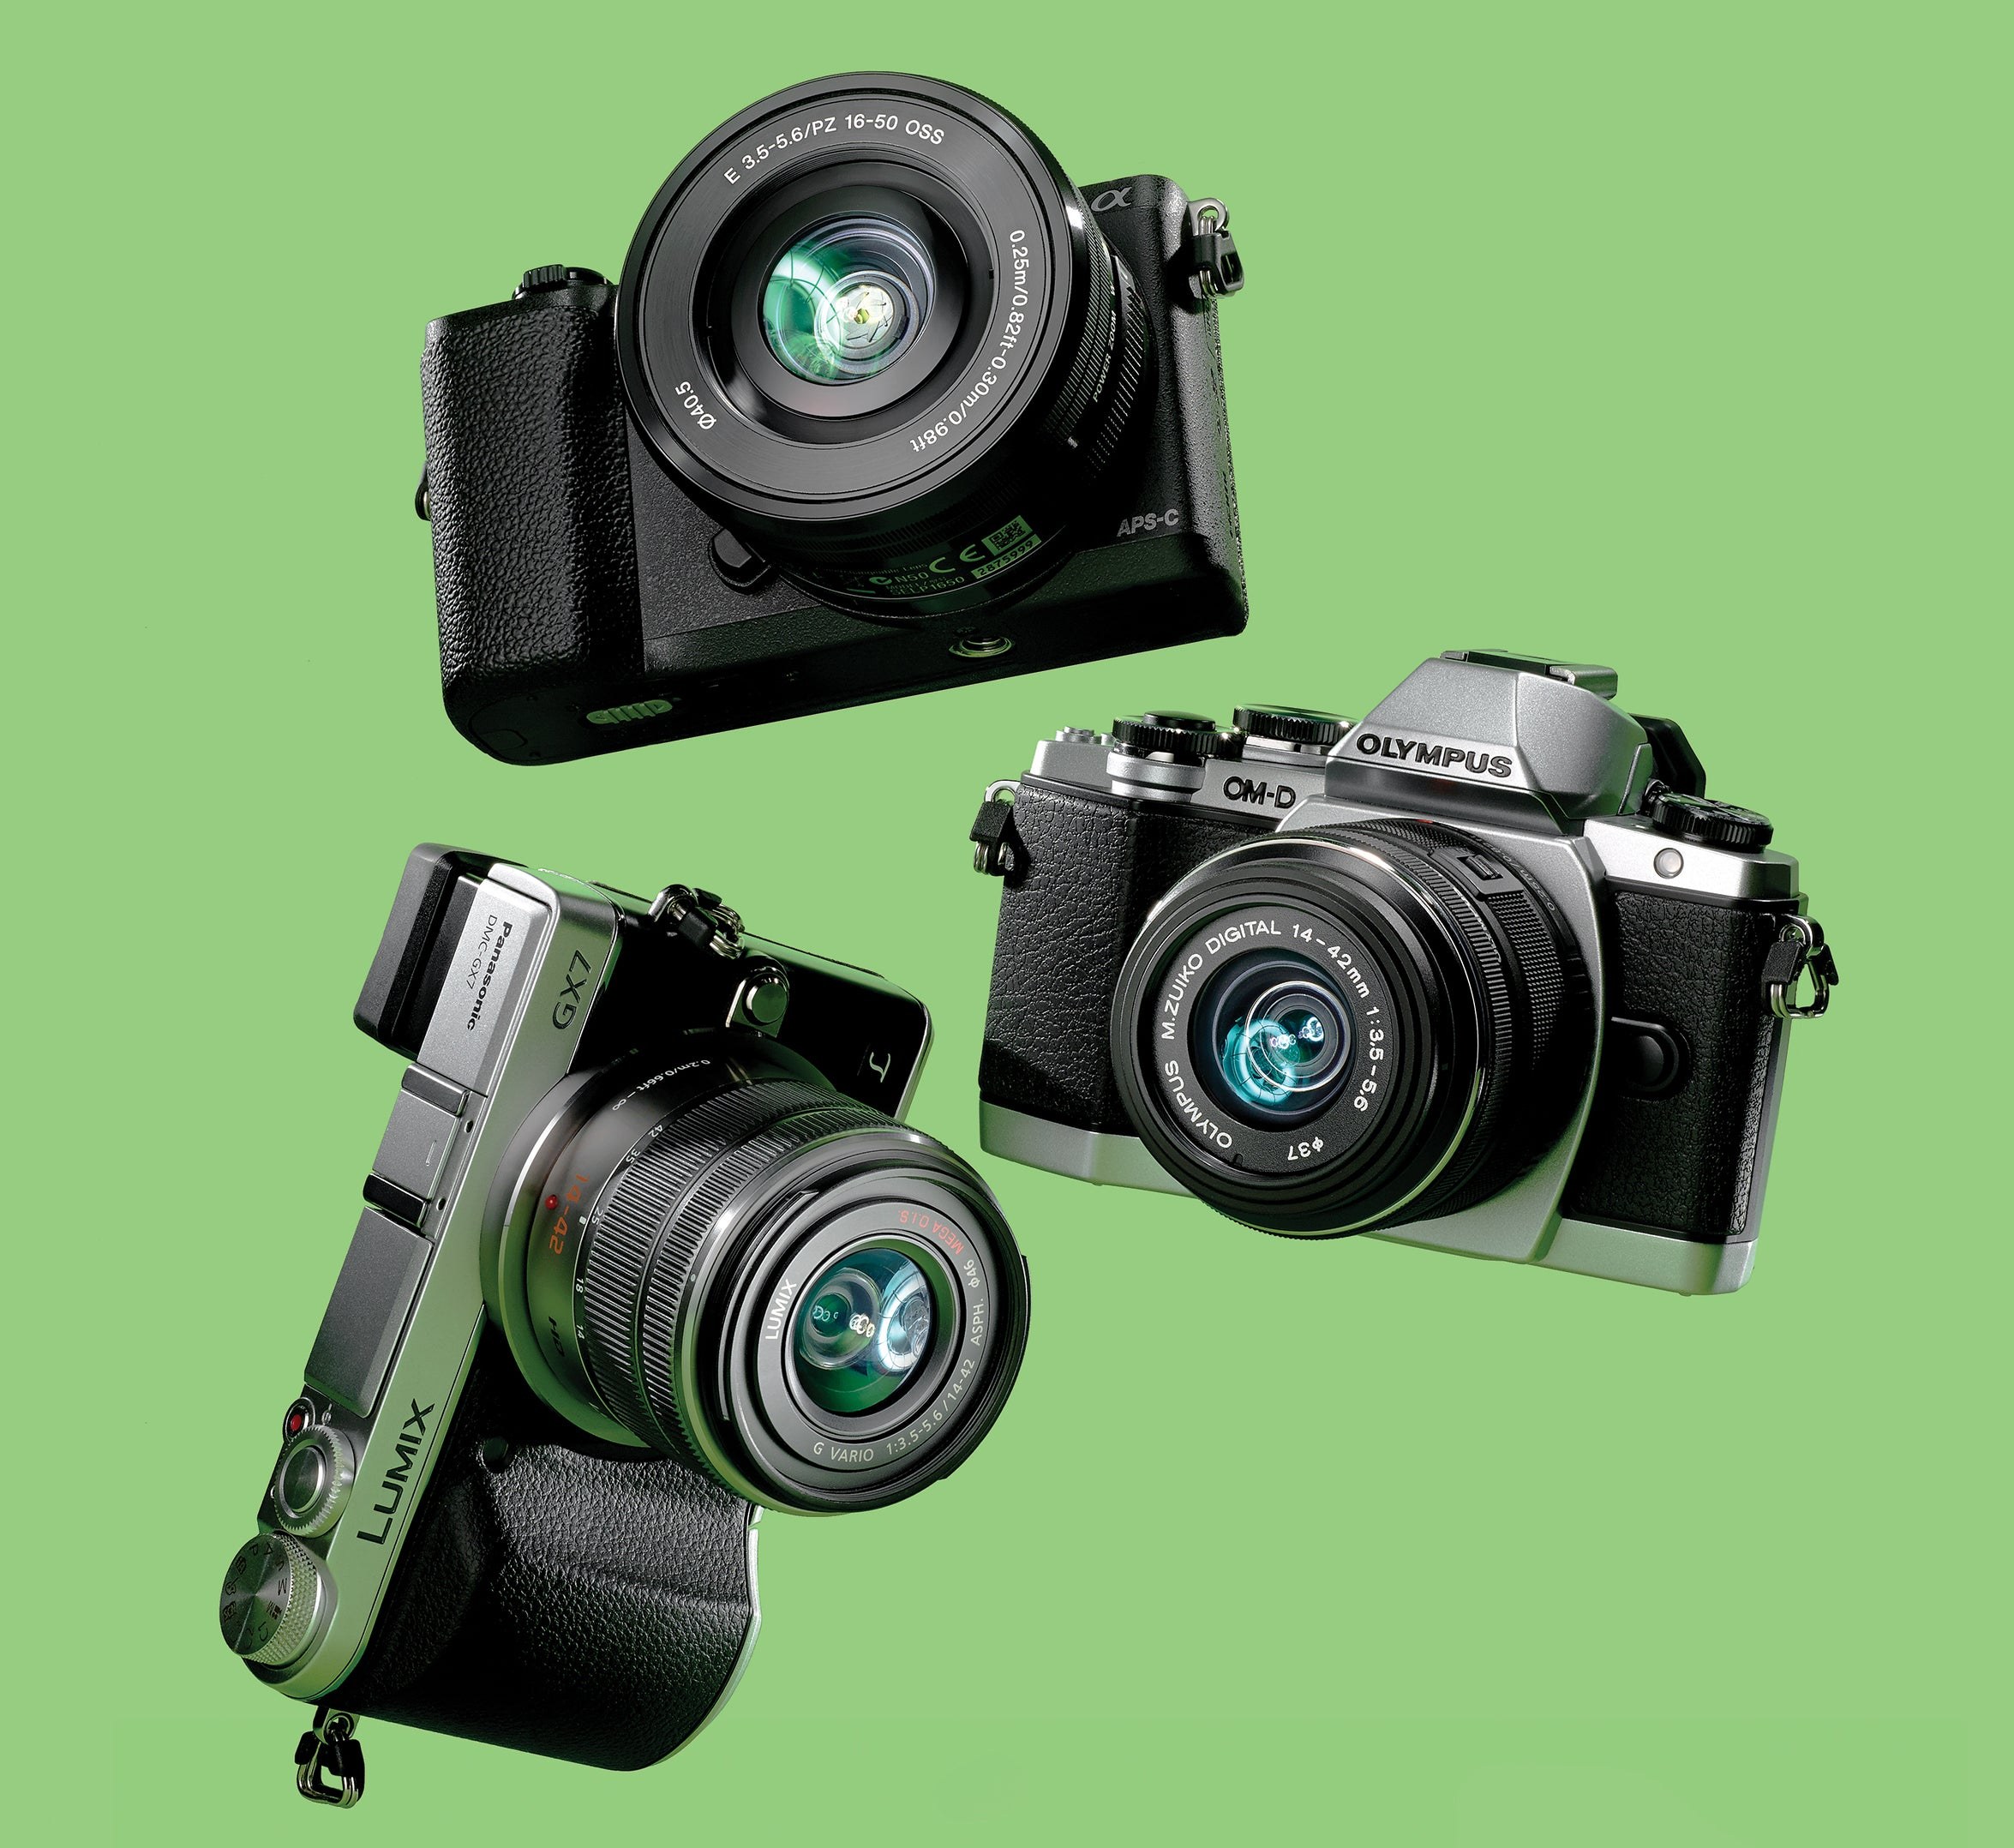 3 Point-And-Shoot Cameras That Deliver Pro Quality Photos